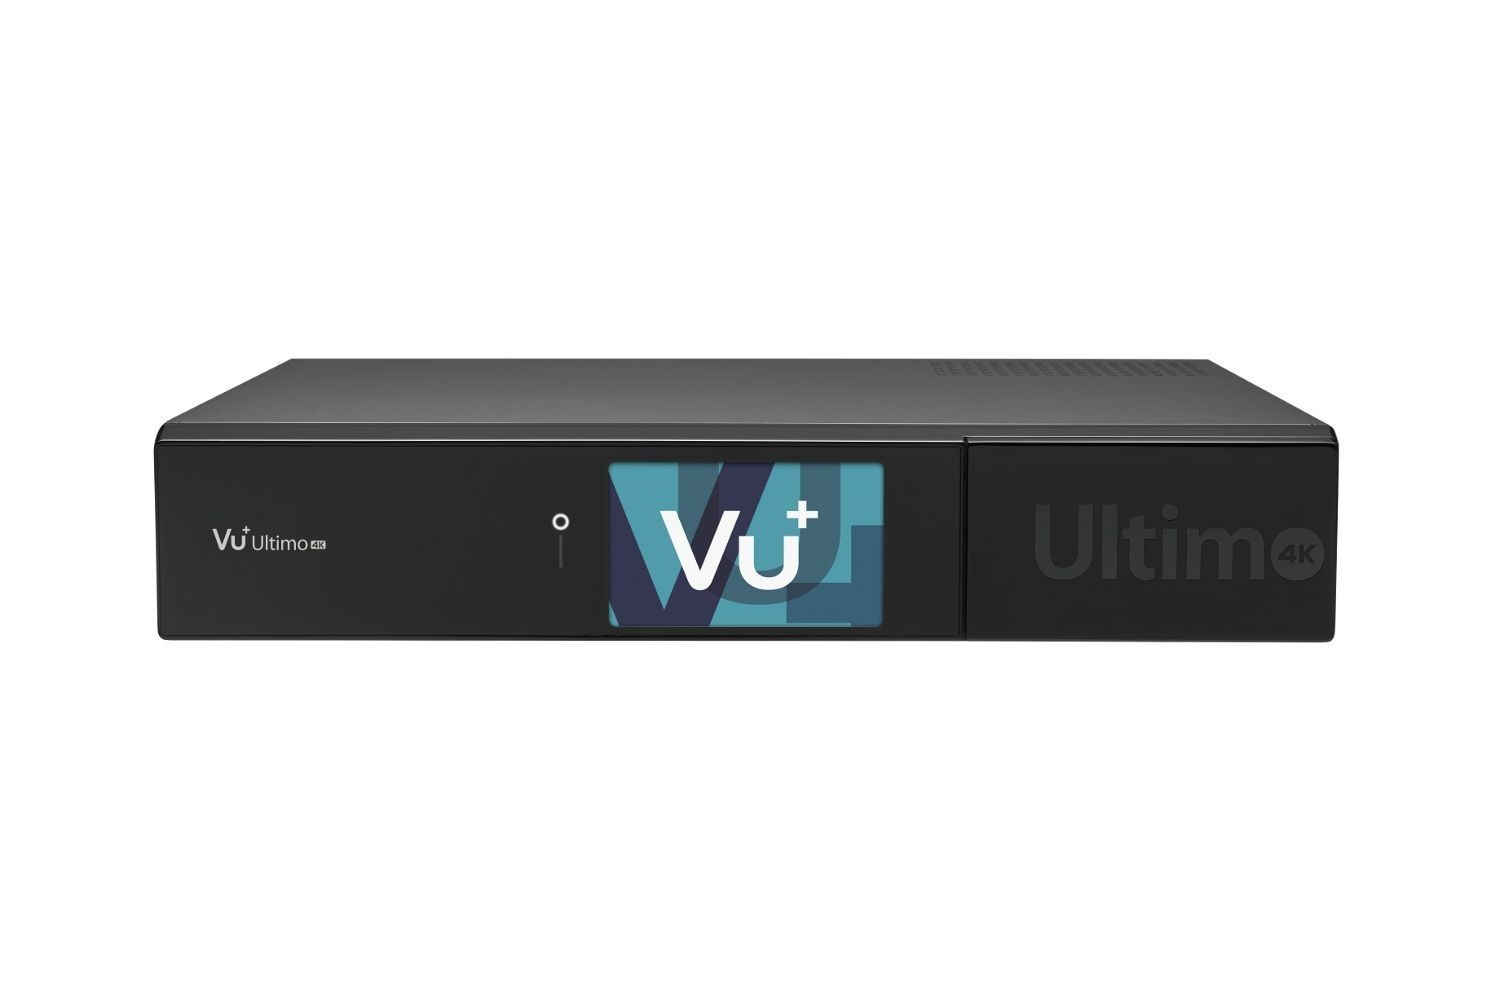 VU+ Ultimo 4K 2x DVB-C FBC / 1x DVB-S2 Dual Tuner PVR ready Linux Receiver UHD 2160p